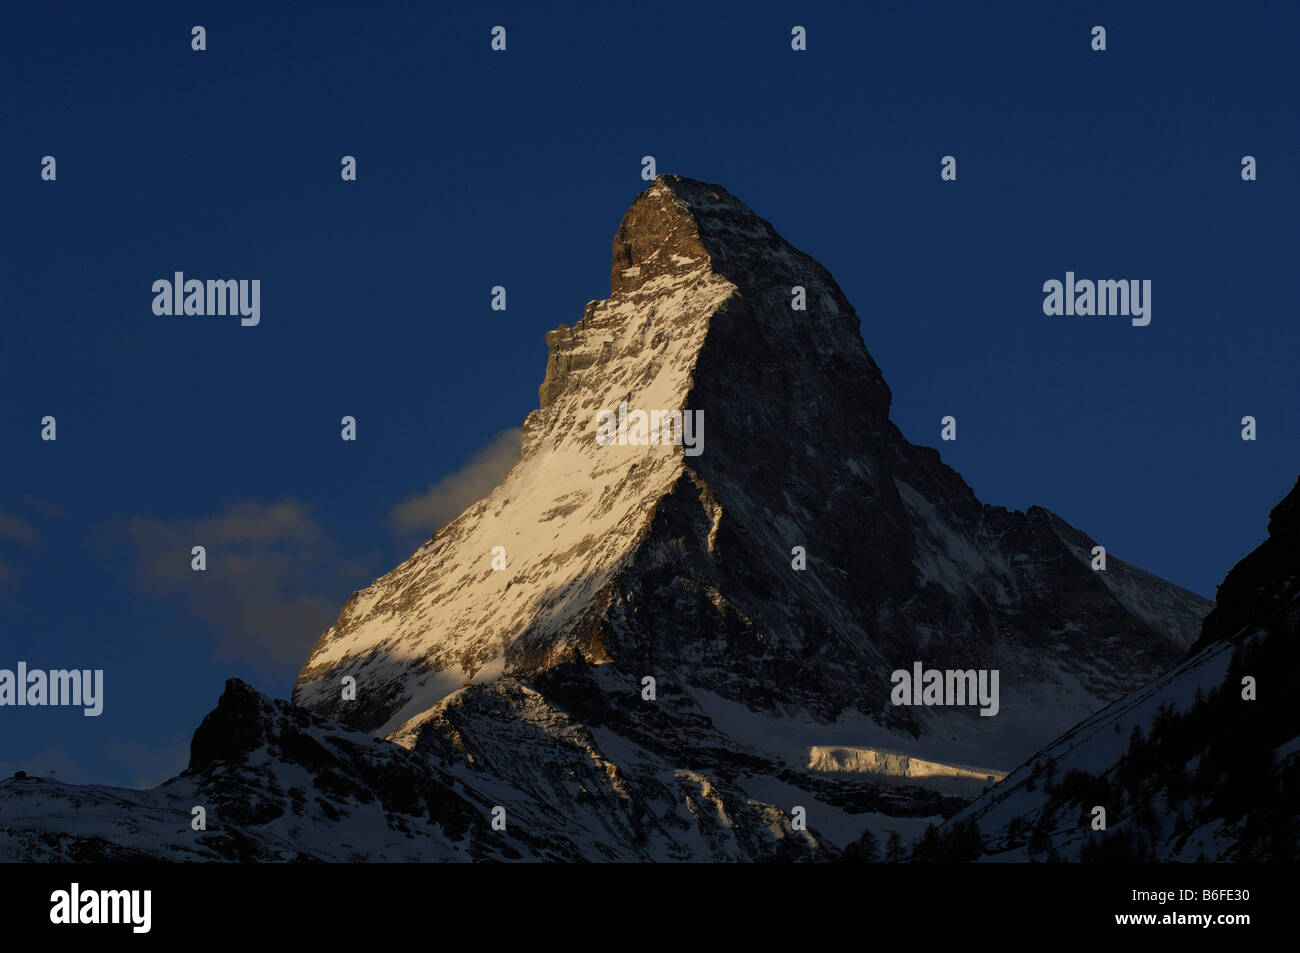 Sunrise on the Matterhorn, Zermatt, Wallis or Valais, Switzerland, Europe - Stock Image